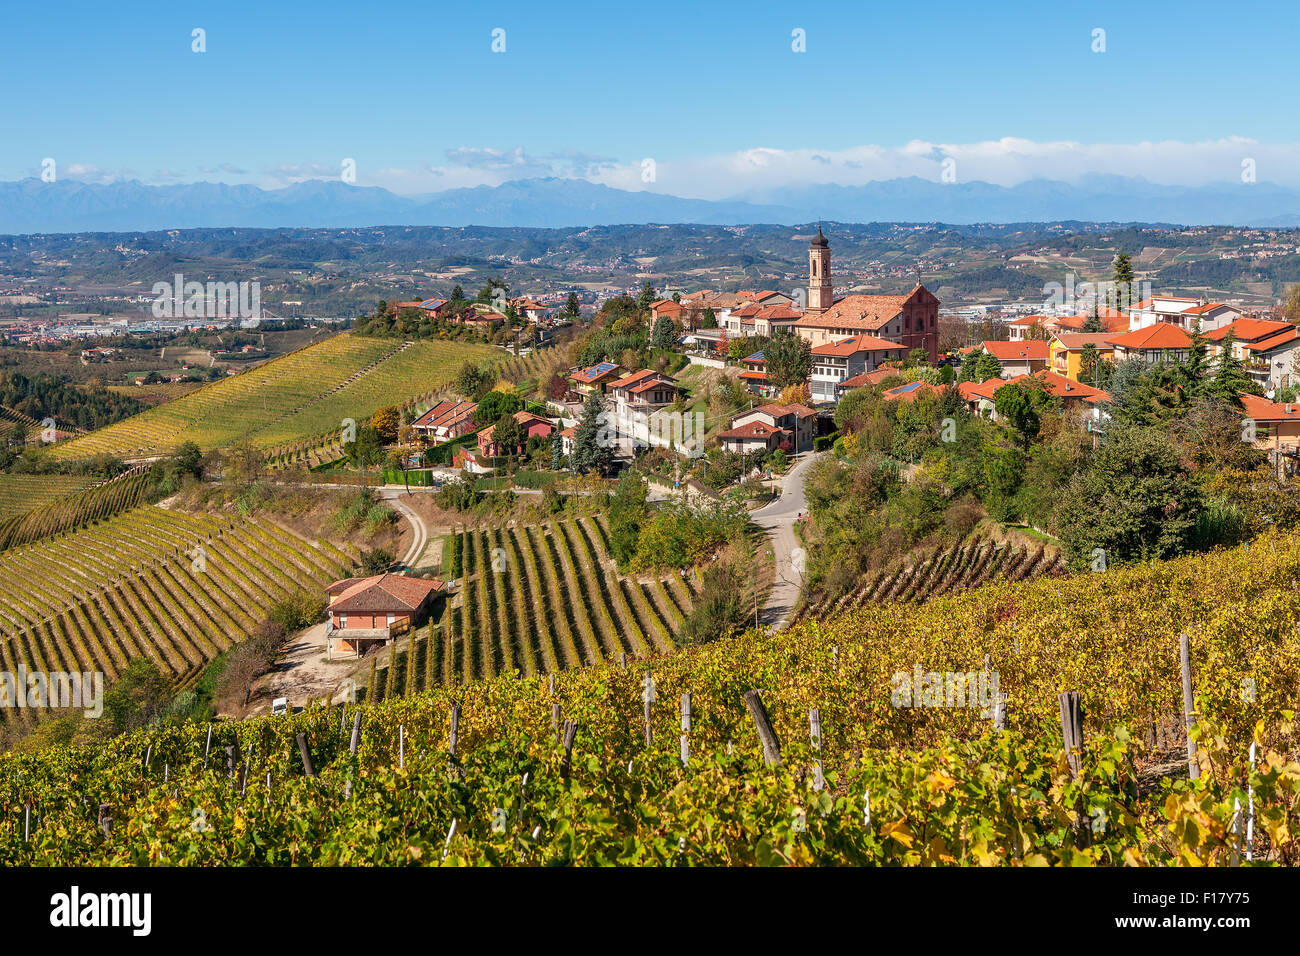 Autumnal vineyards and small town of Treiso in Piedmont, Northern Italy. - Stock Image